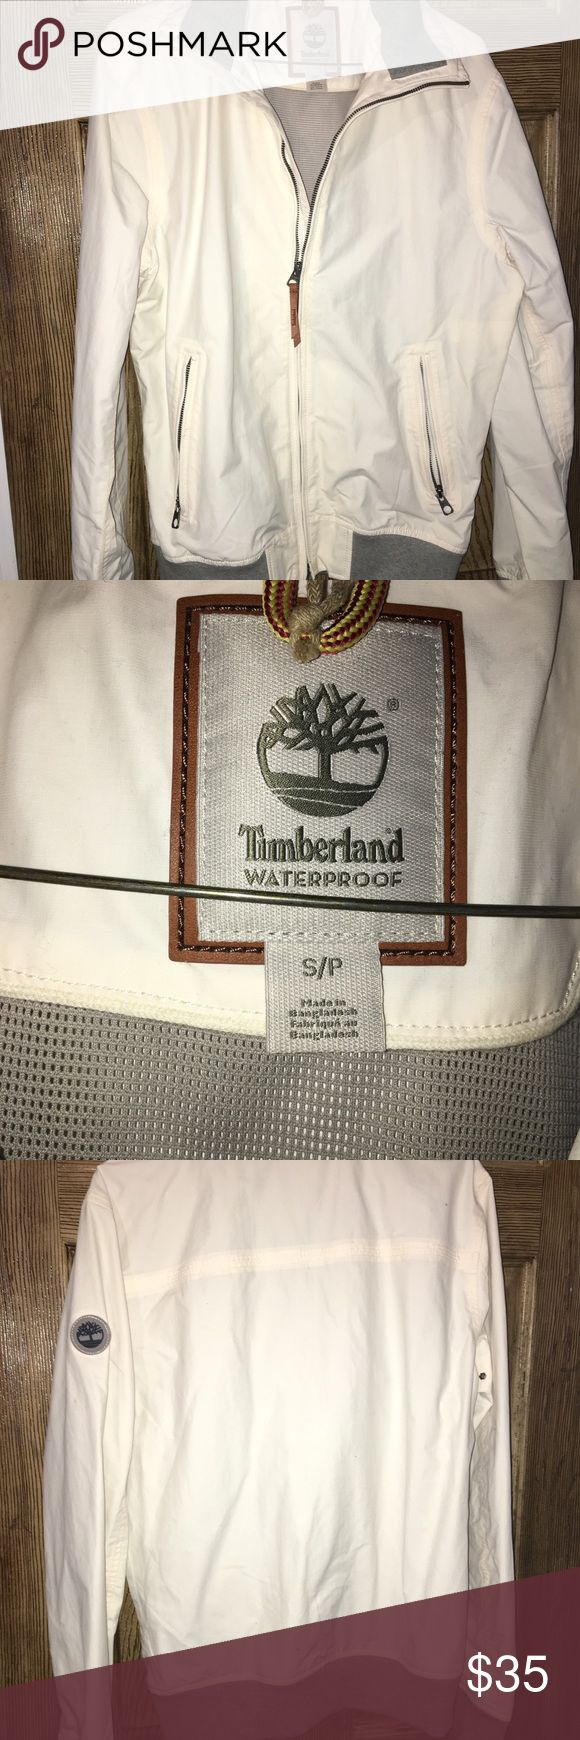 Timberland waterproof jacket White/ cream colored timberland waterproof jacket! Never worn and in perfect condition!! Timberland Jackets & Coats